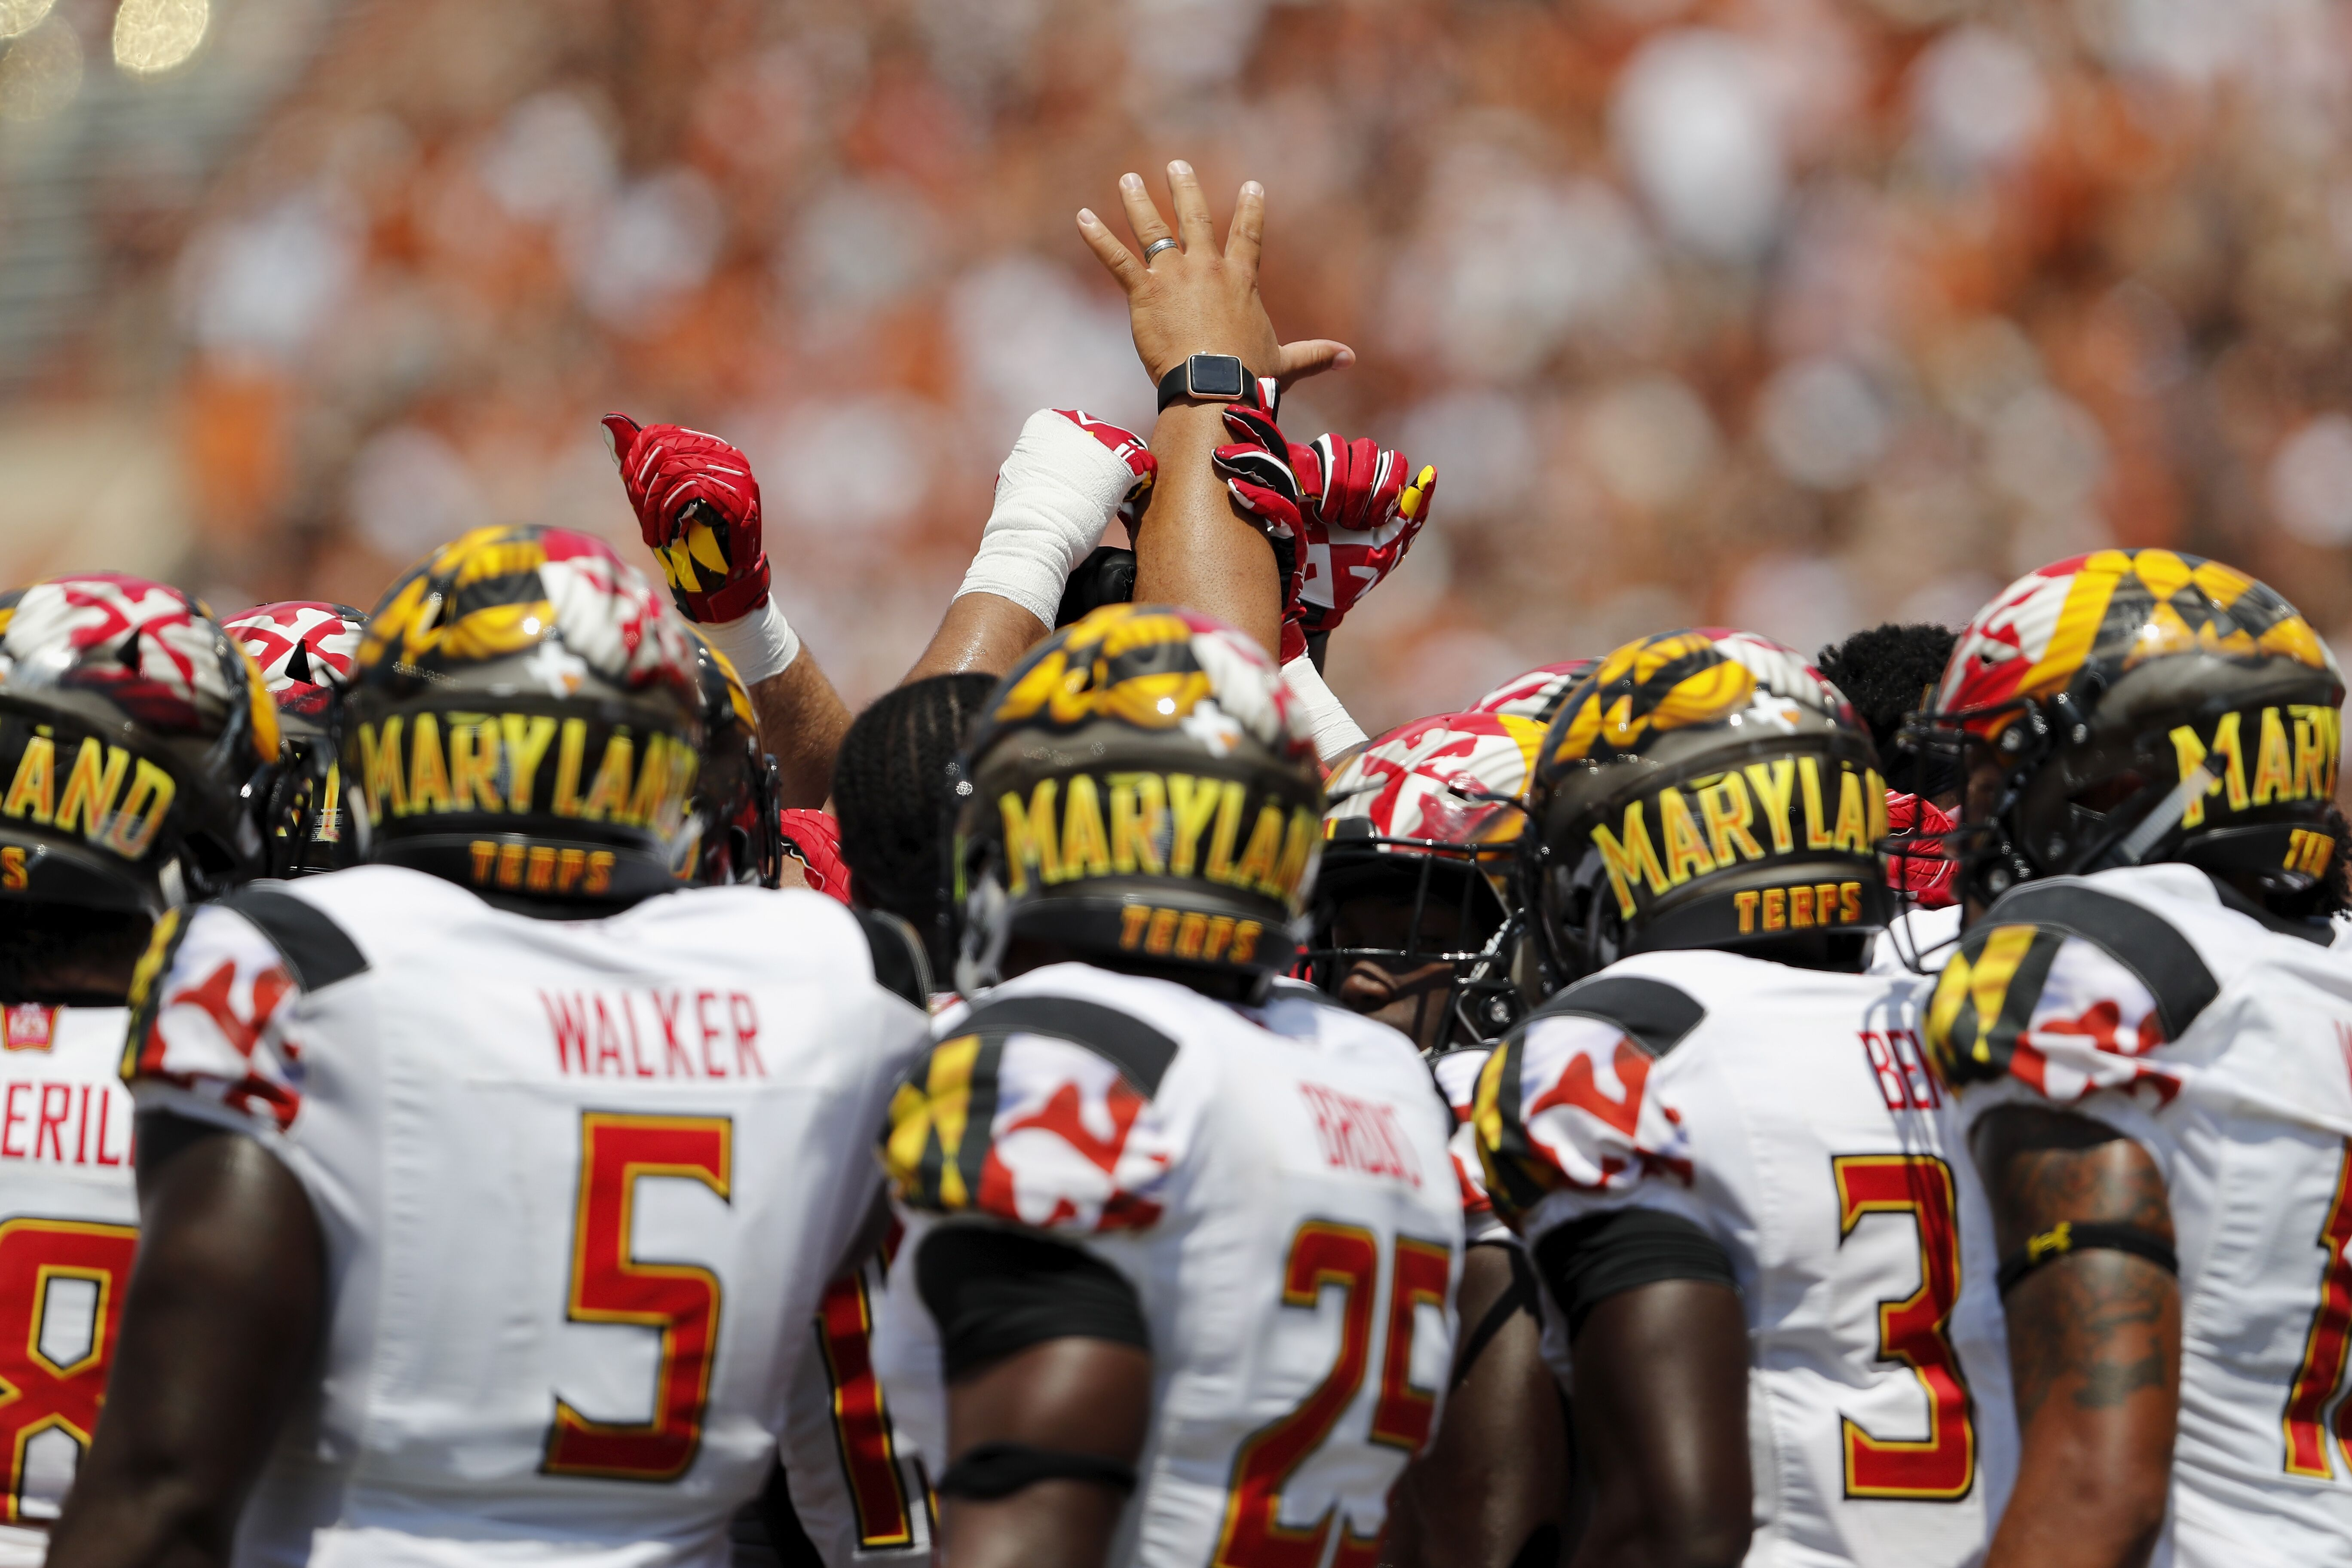 Pin By Md Minhajul Mamun On Soccer Players: Maryland Football Vs. Towson Preview: What To Watch In